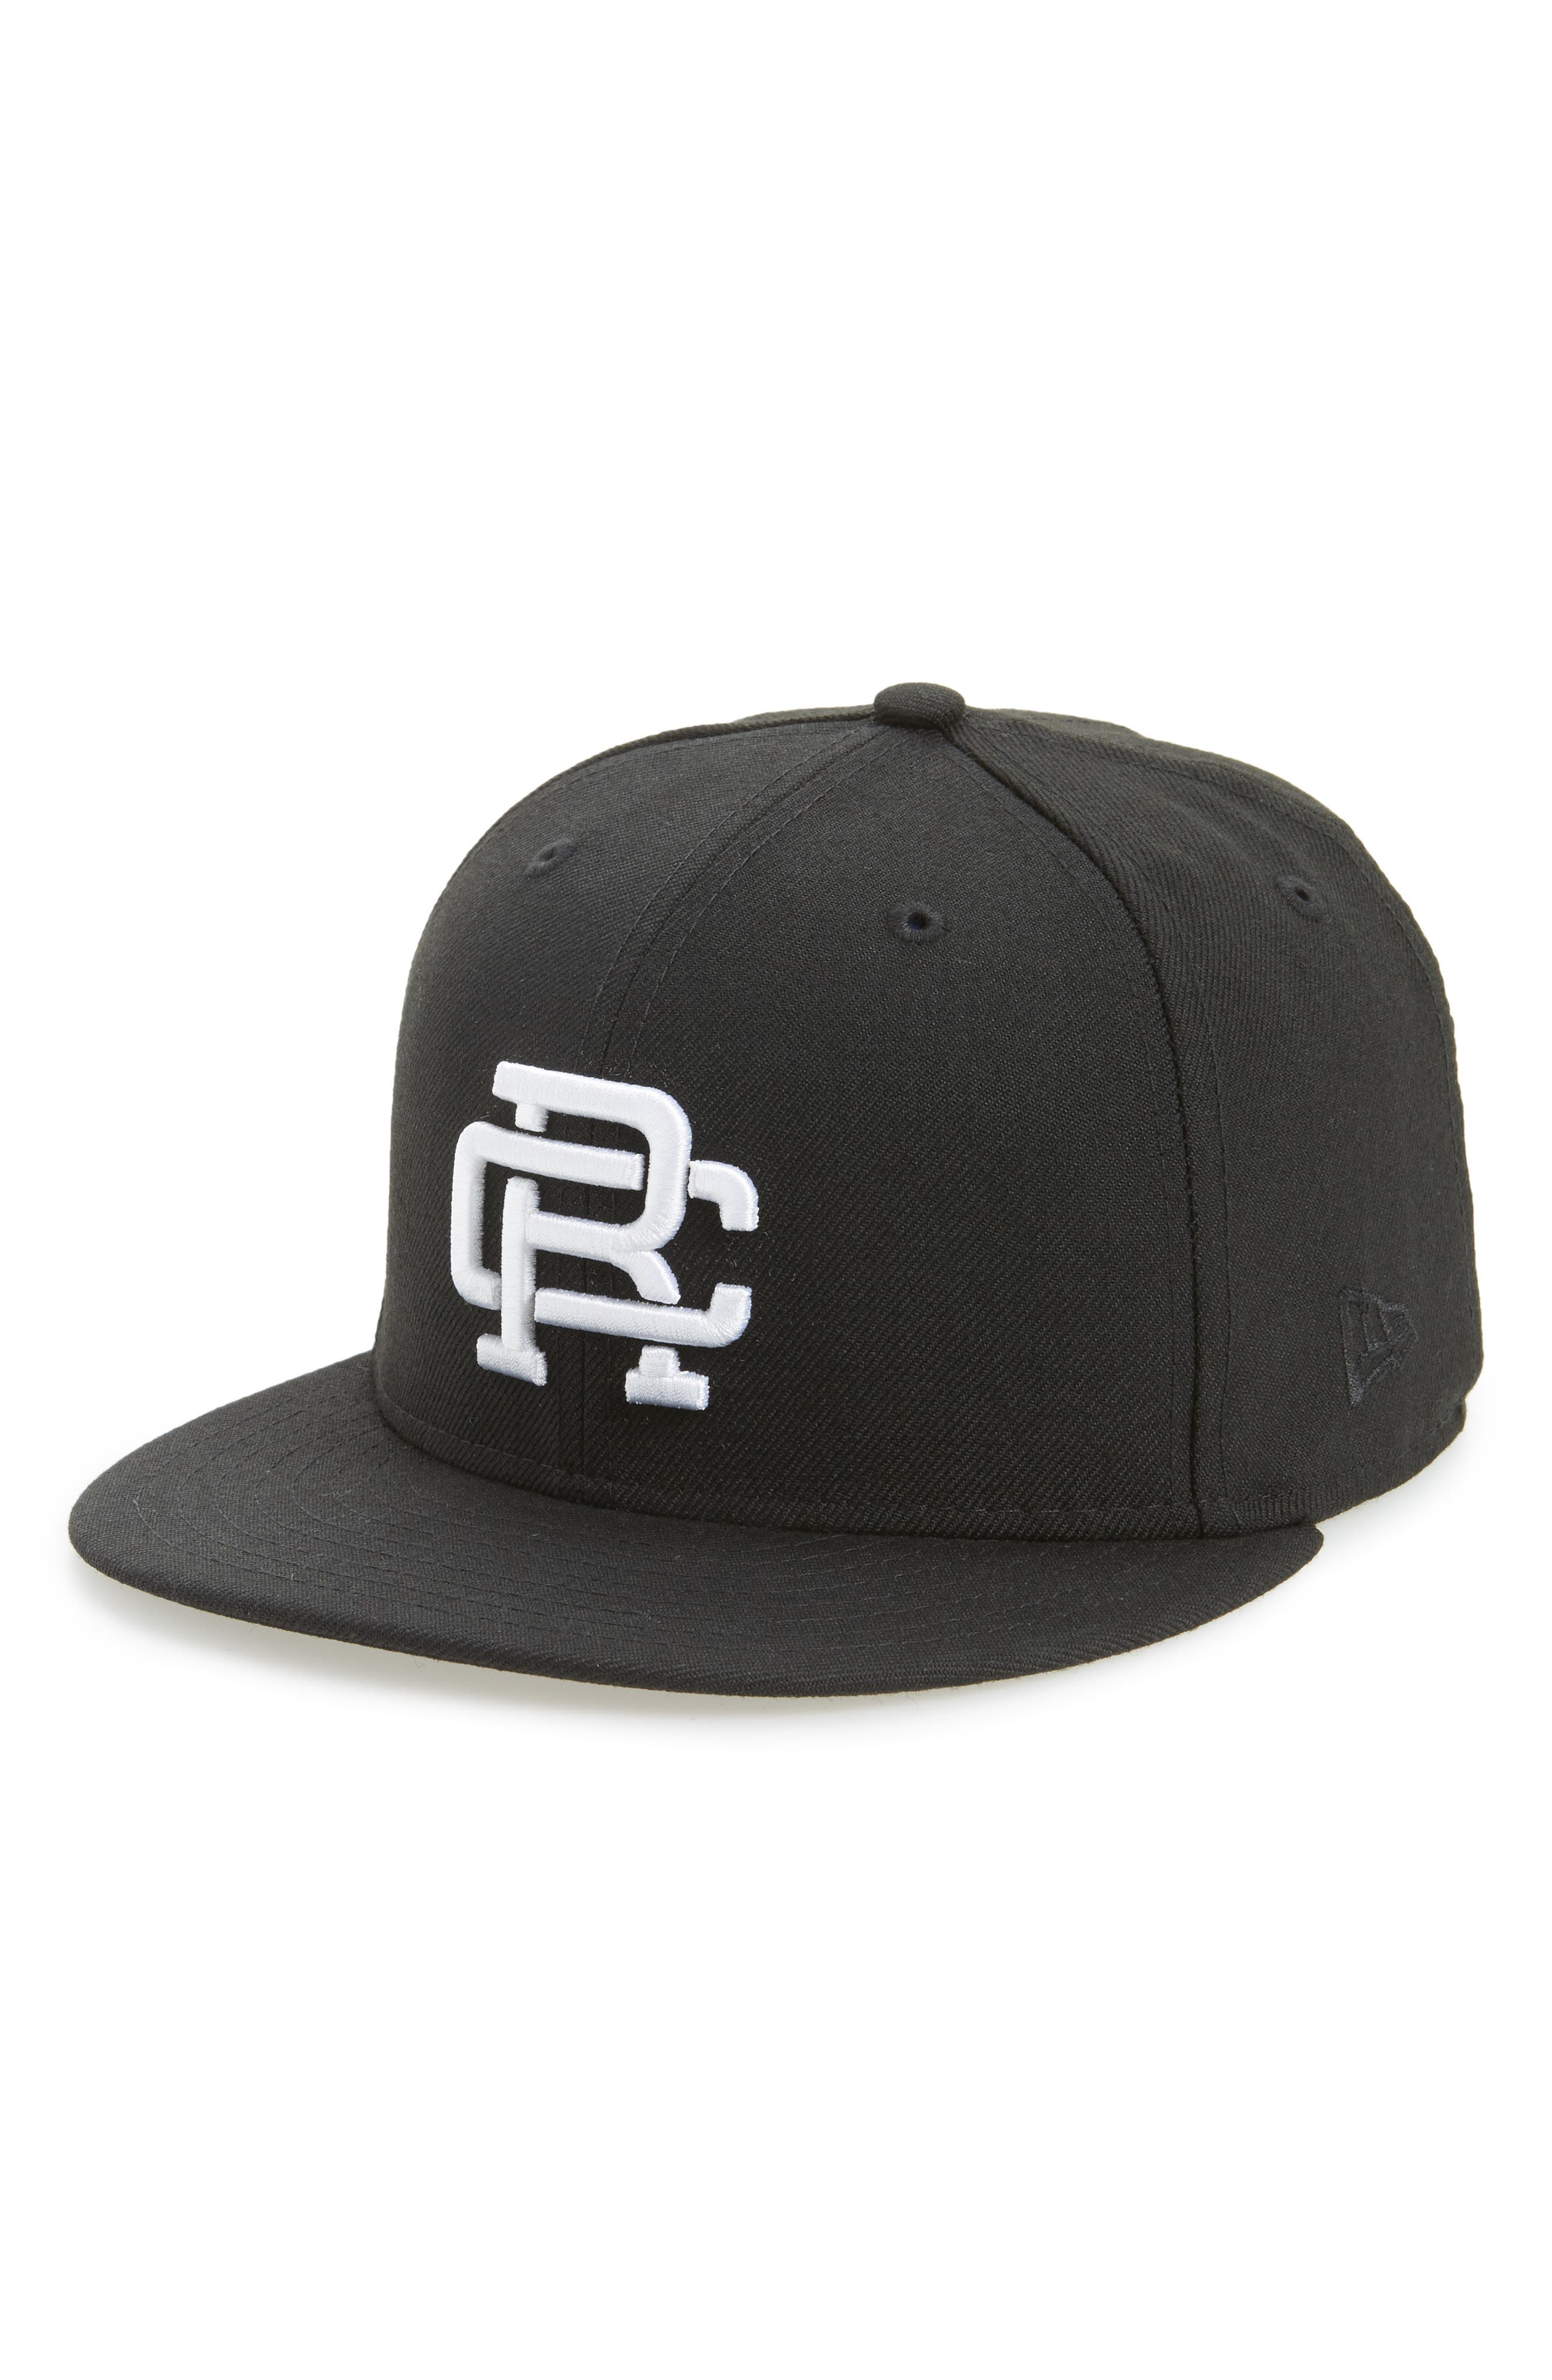 Alternate Image 1 Selected - Reigning Champ New Era Fitted Baseball Cap